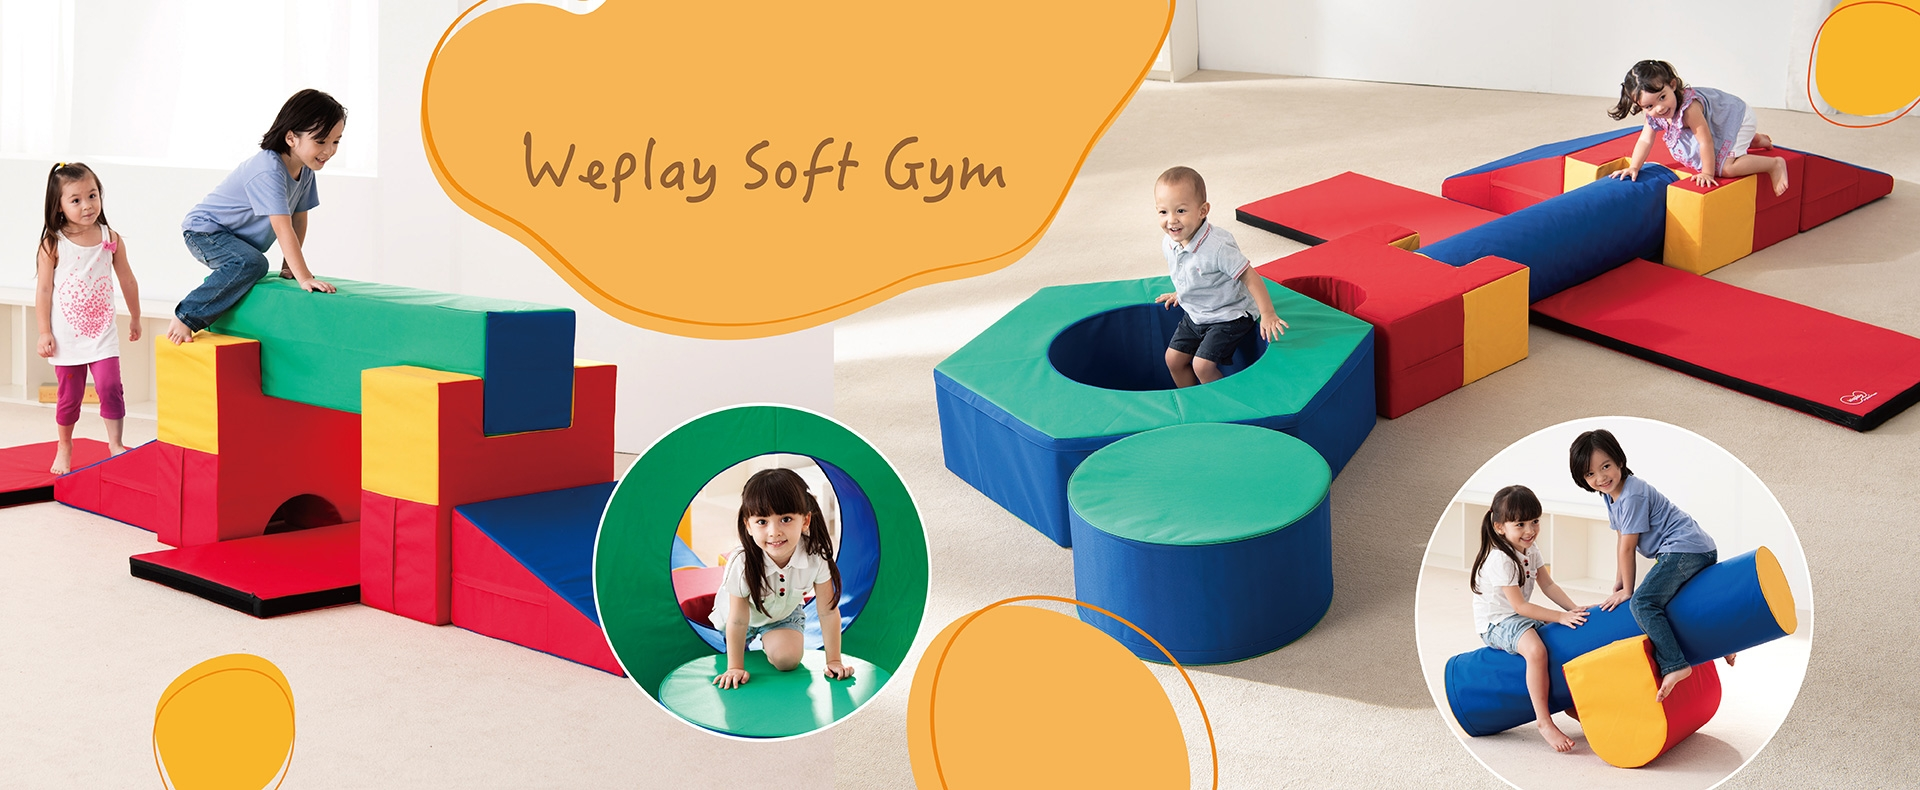 WEPLAY SOFT GYM